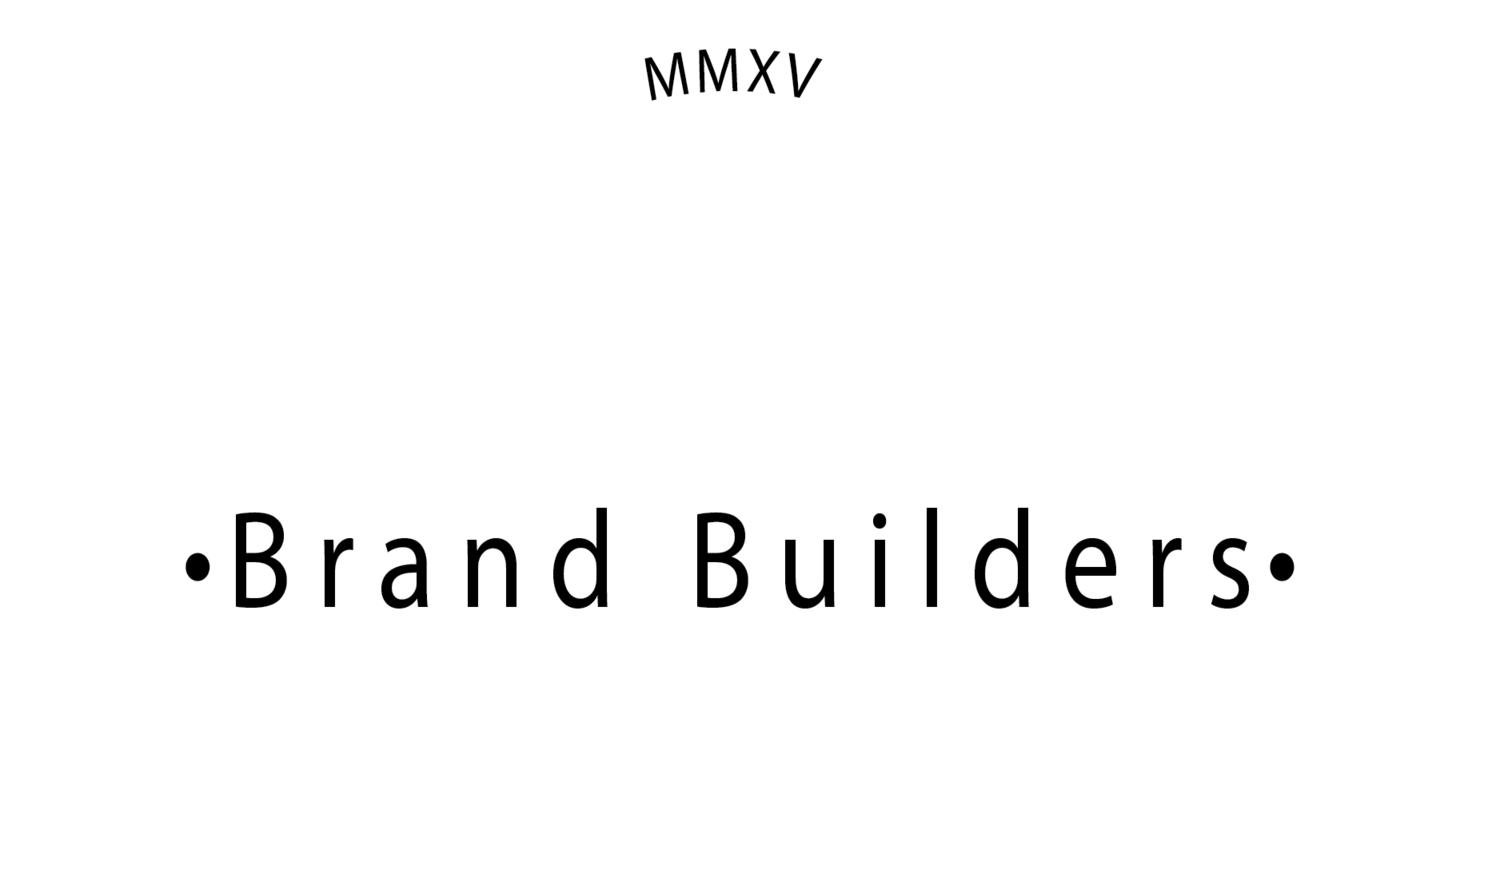 Boutique Brand Builders